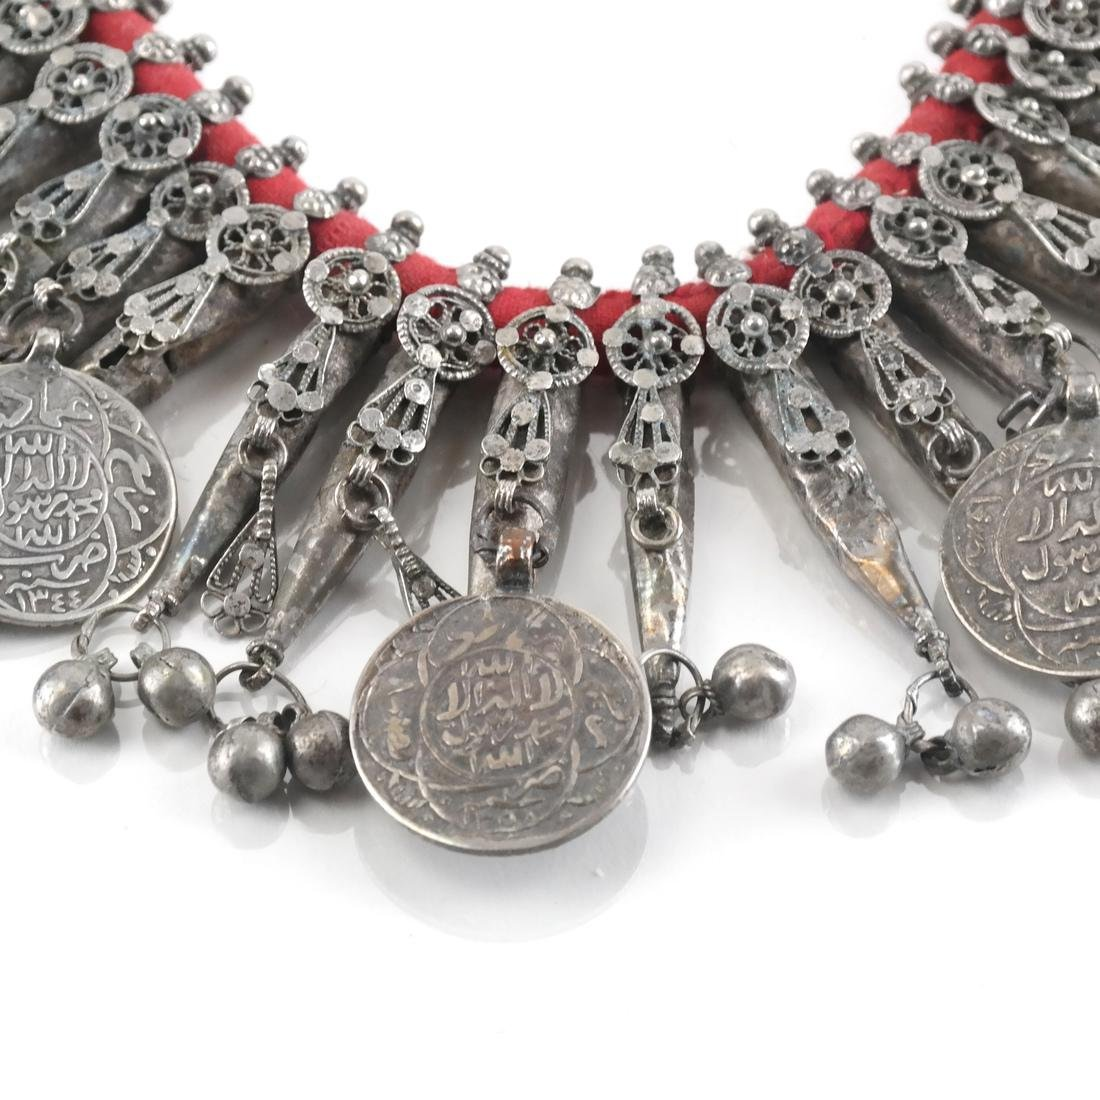 Silver Afghan/Central Asian Tassel & Coin Necklace - 3